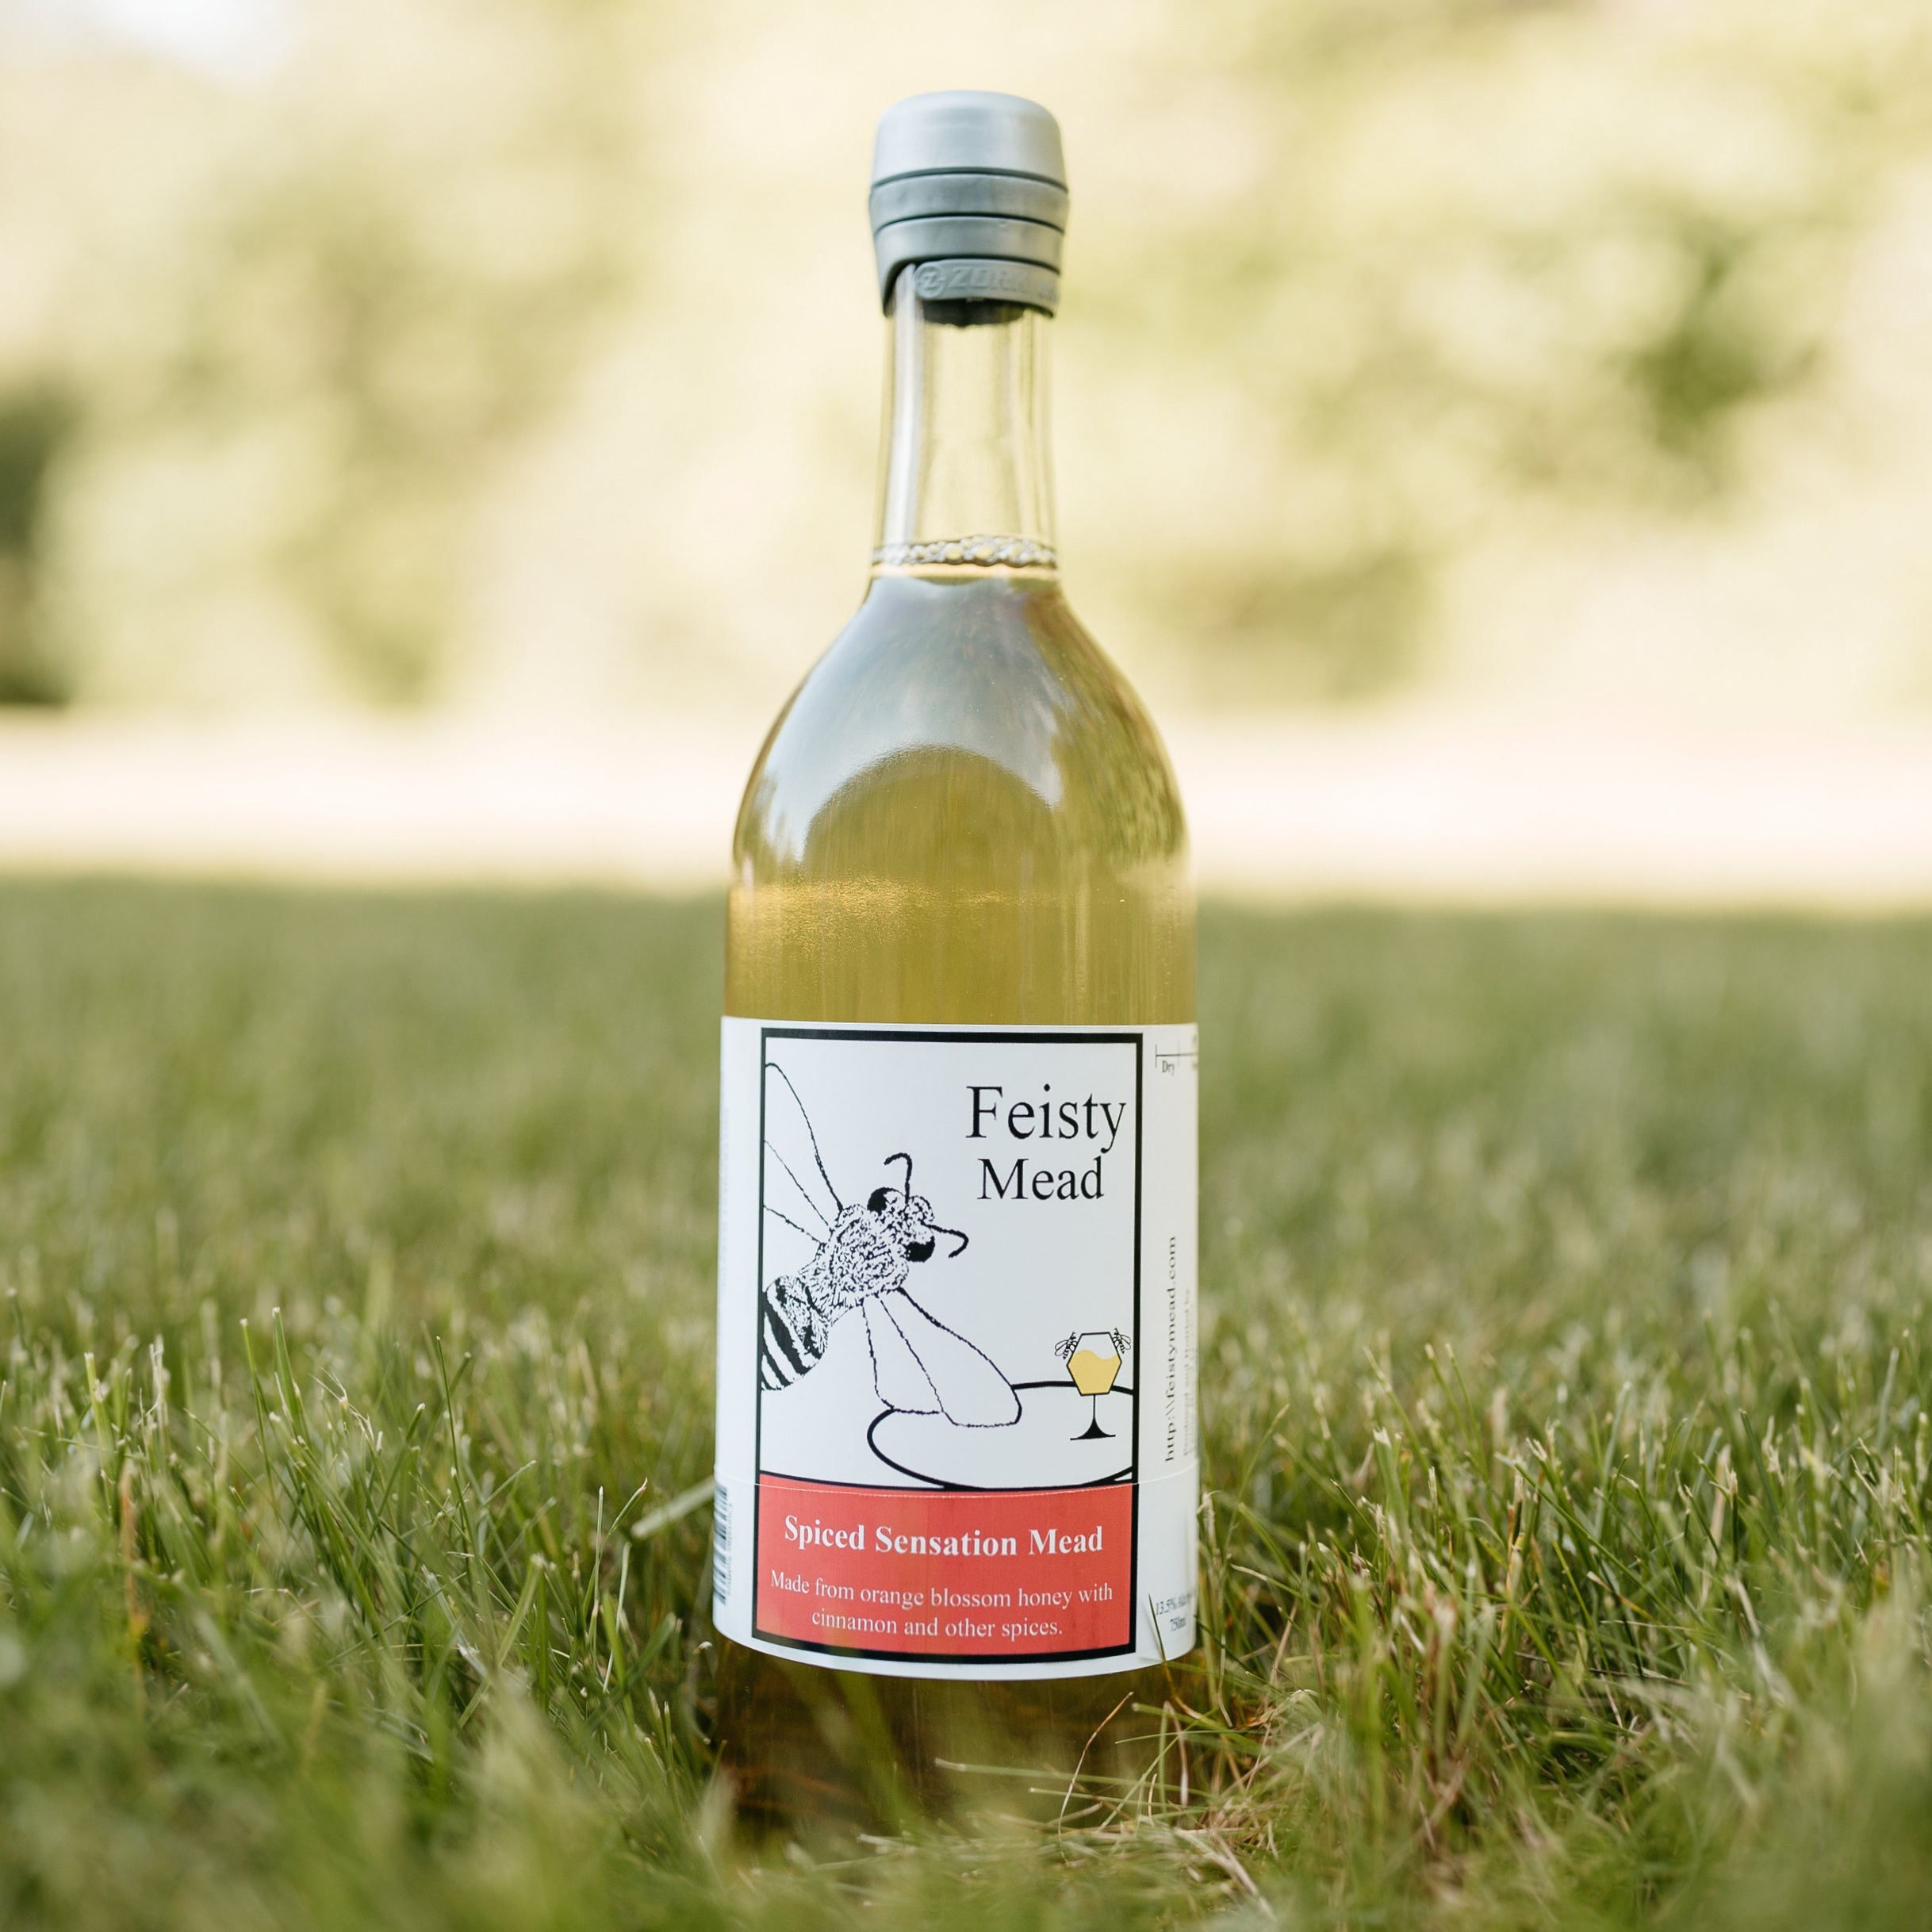 spiced sensation - This mead transforms in your mouth and hits all the right notes, sweet, spiced, and a clean finish with a hint of raisins, vanilla, and peppercorn, with the orange blossom honey carrying though.